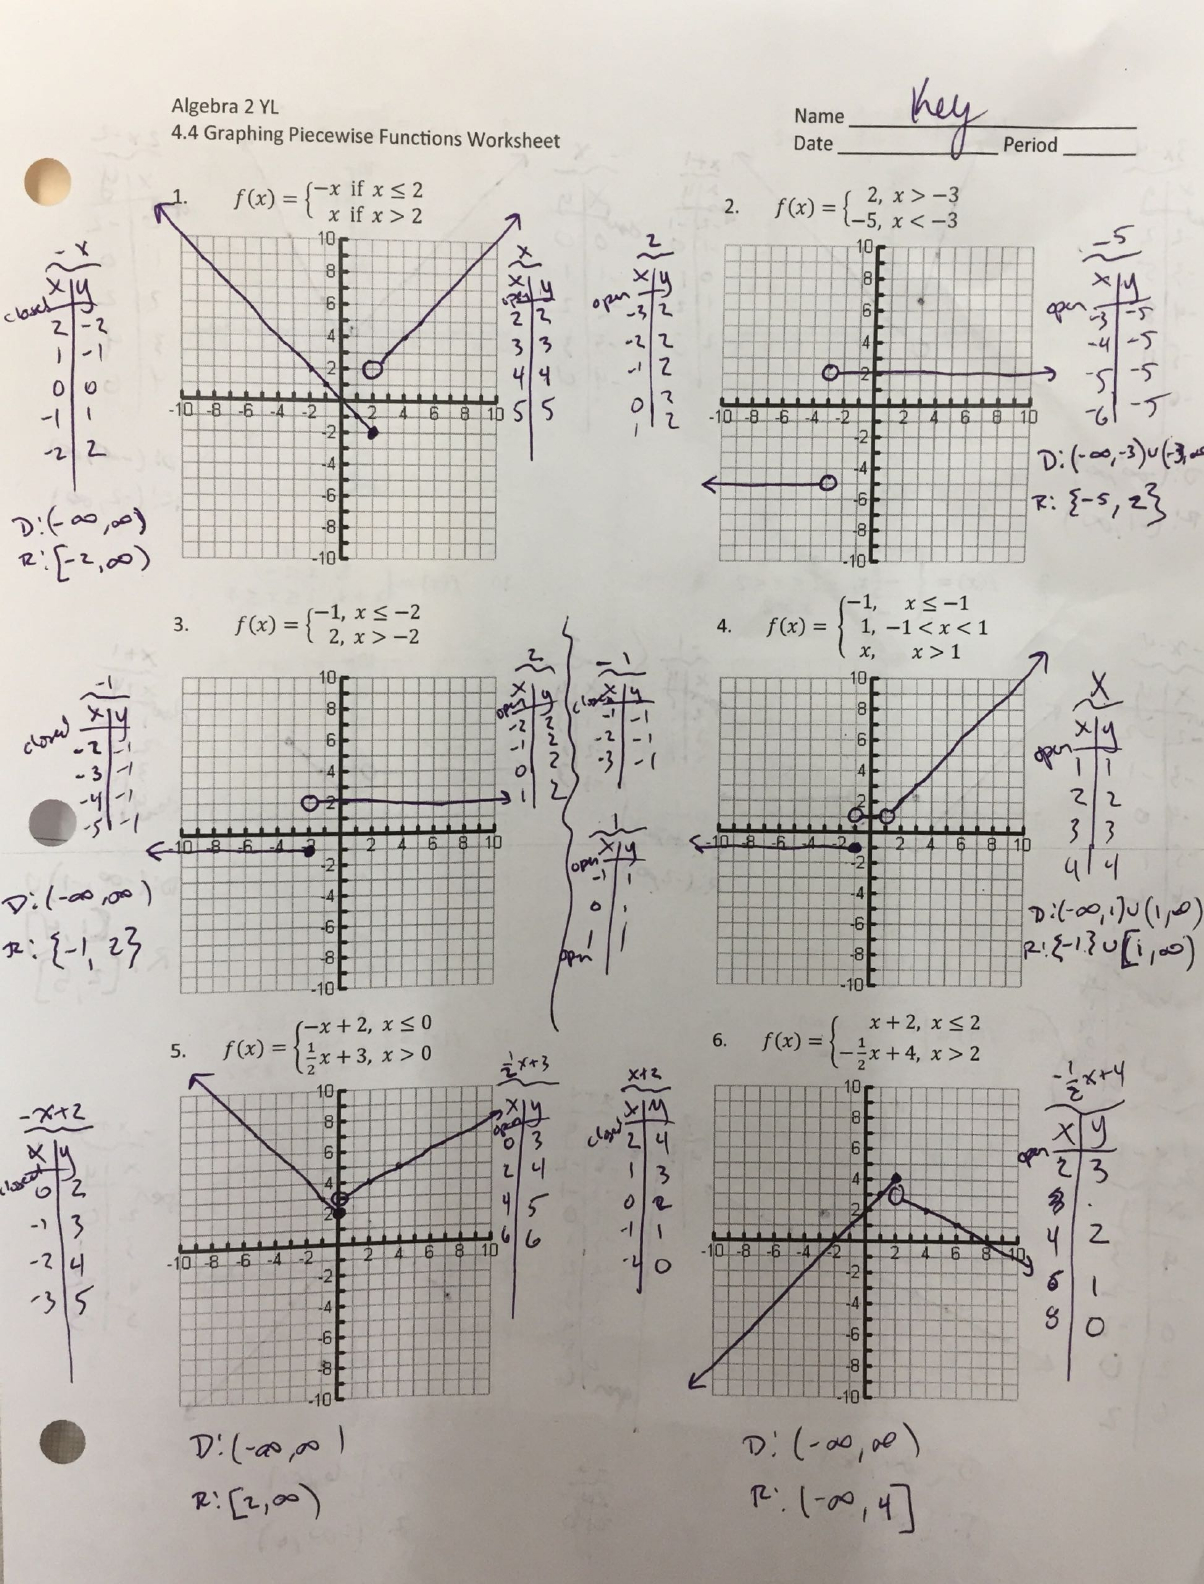 Algebra 2 Yl 44 Graphing Piecewise Functions 2 Yl 44 Graphing For Piecewise Functions Worksheet 1 Answers